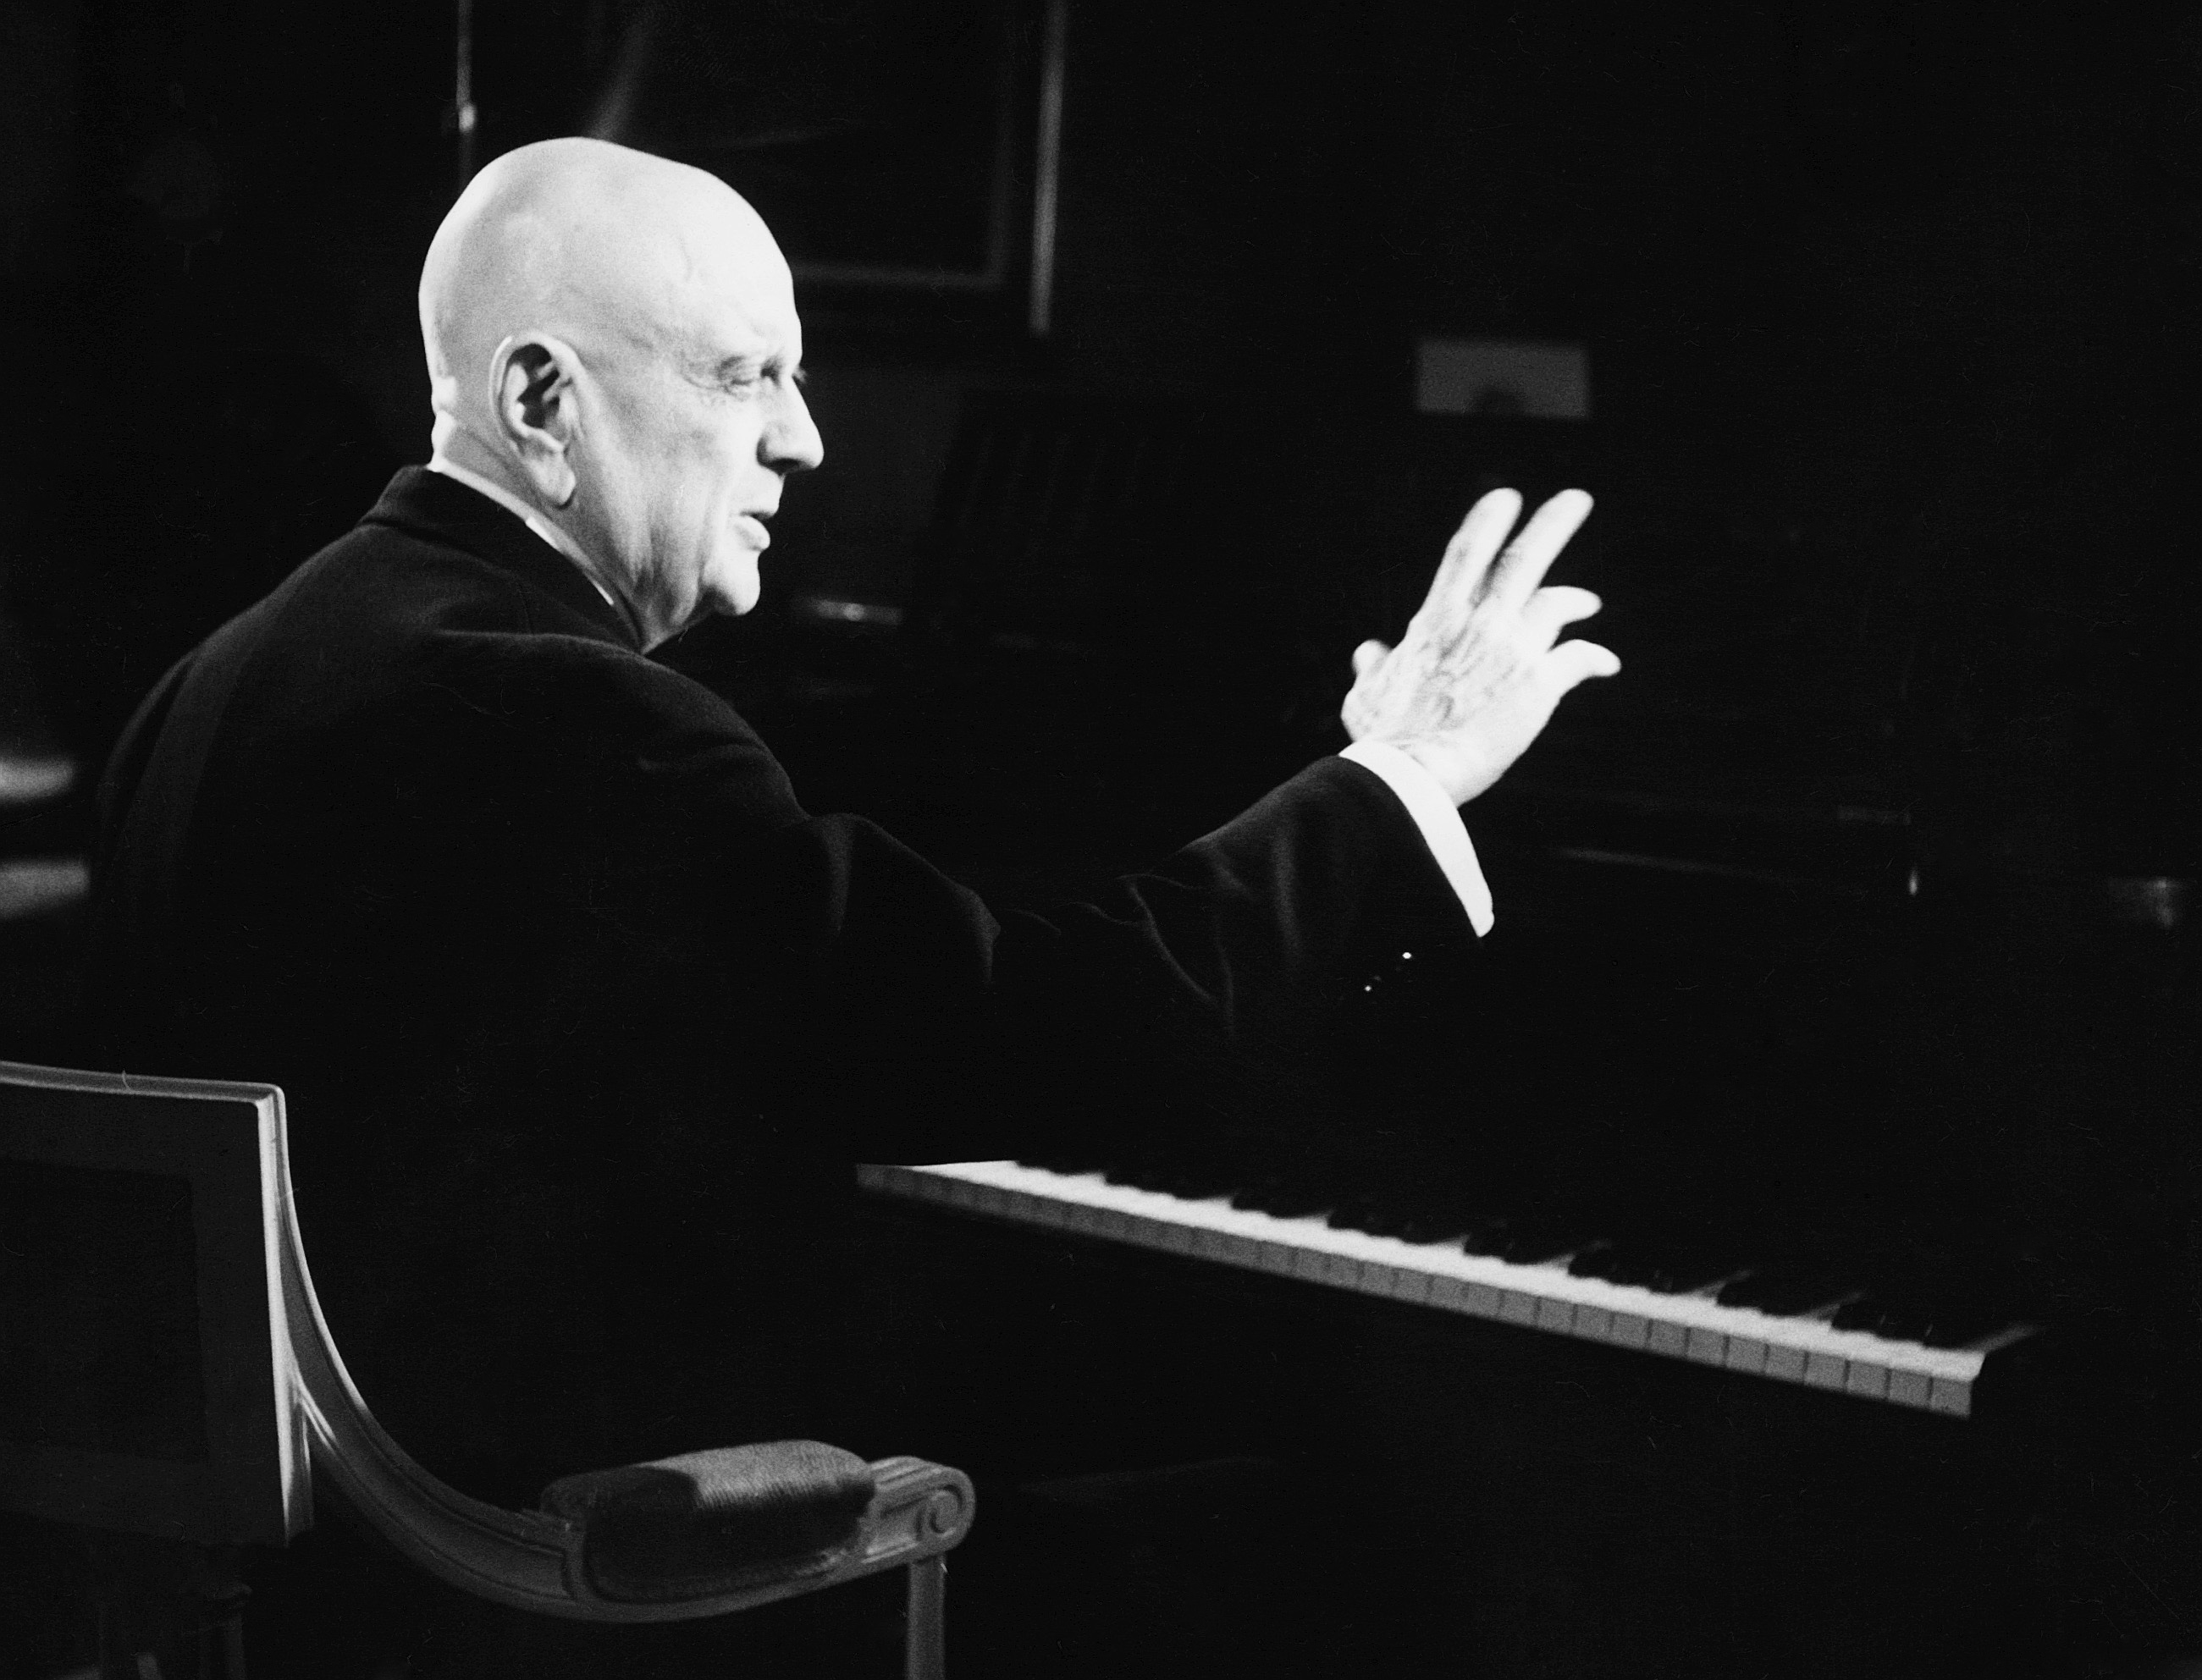 Jean Sibelius - Concerto for Violin and Orchestra in D Minor, Op. 47 / Tapiola - Tone Poem, Op. 112